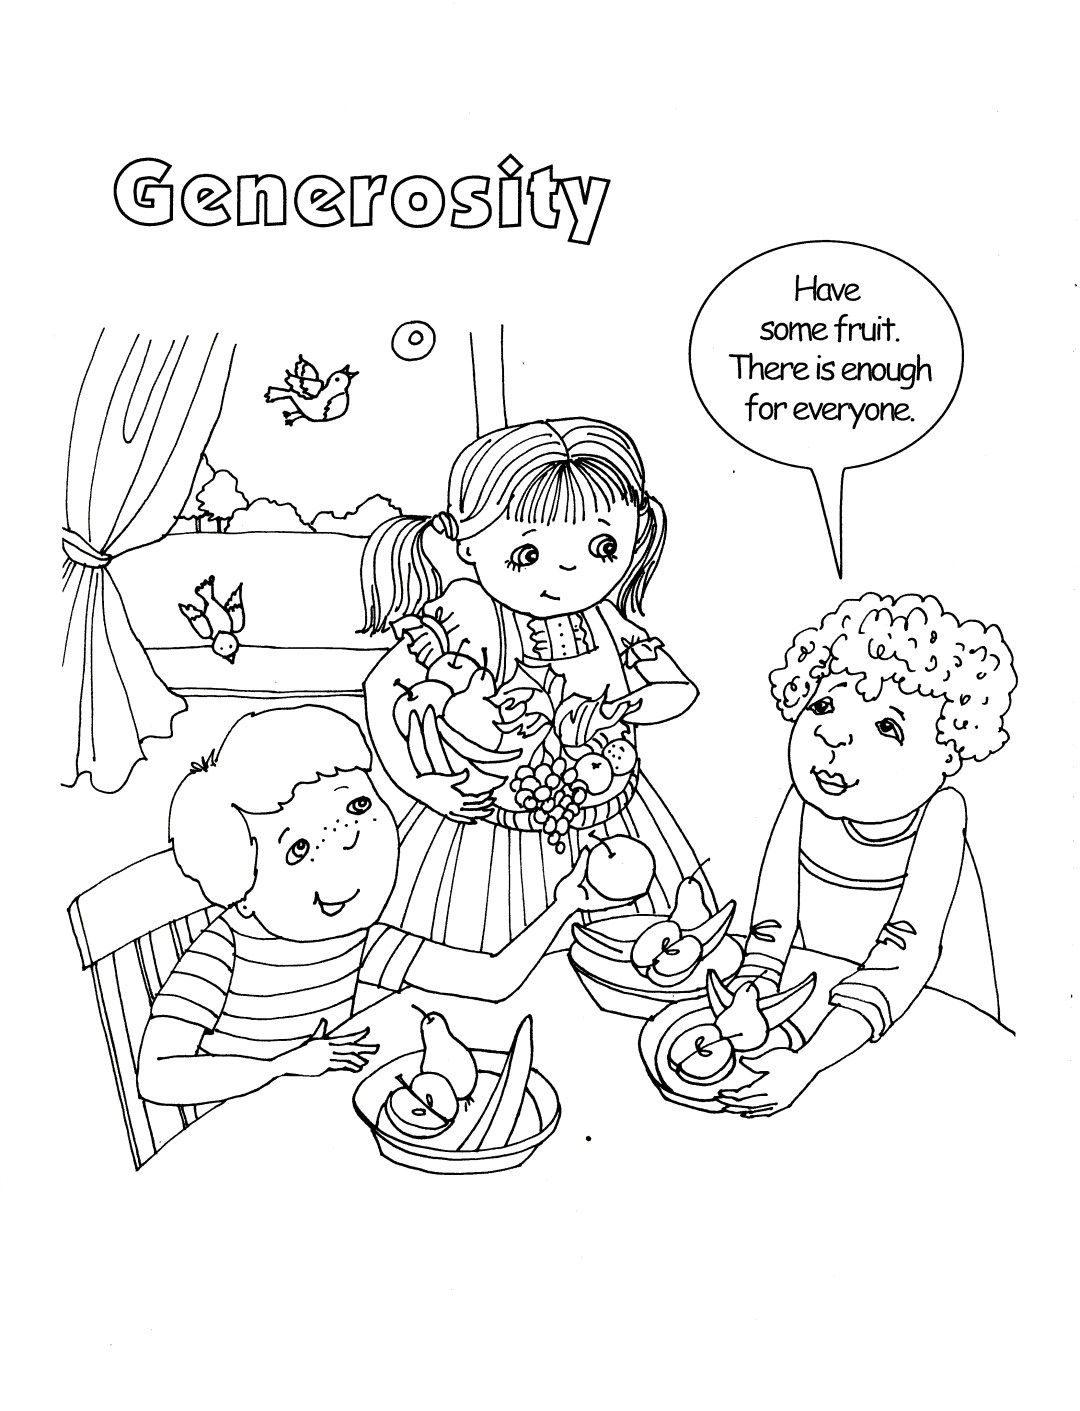 Generosity Coloring Sheet